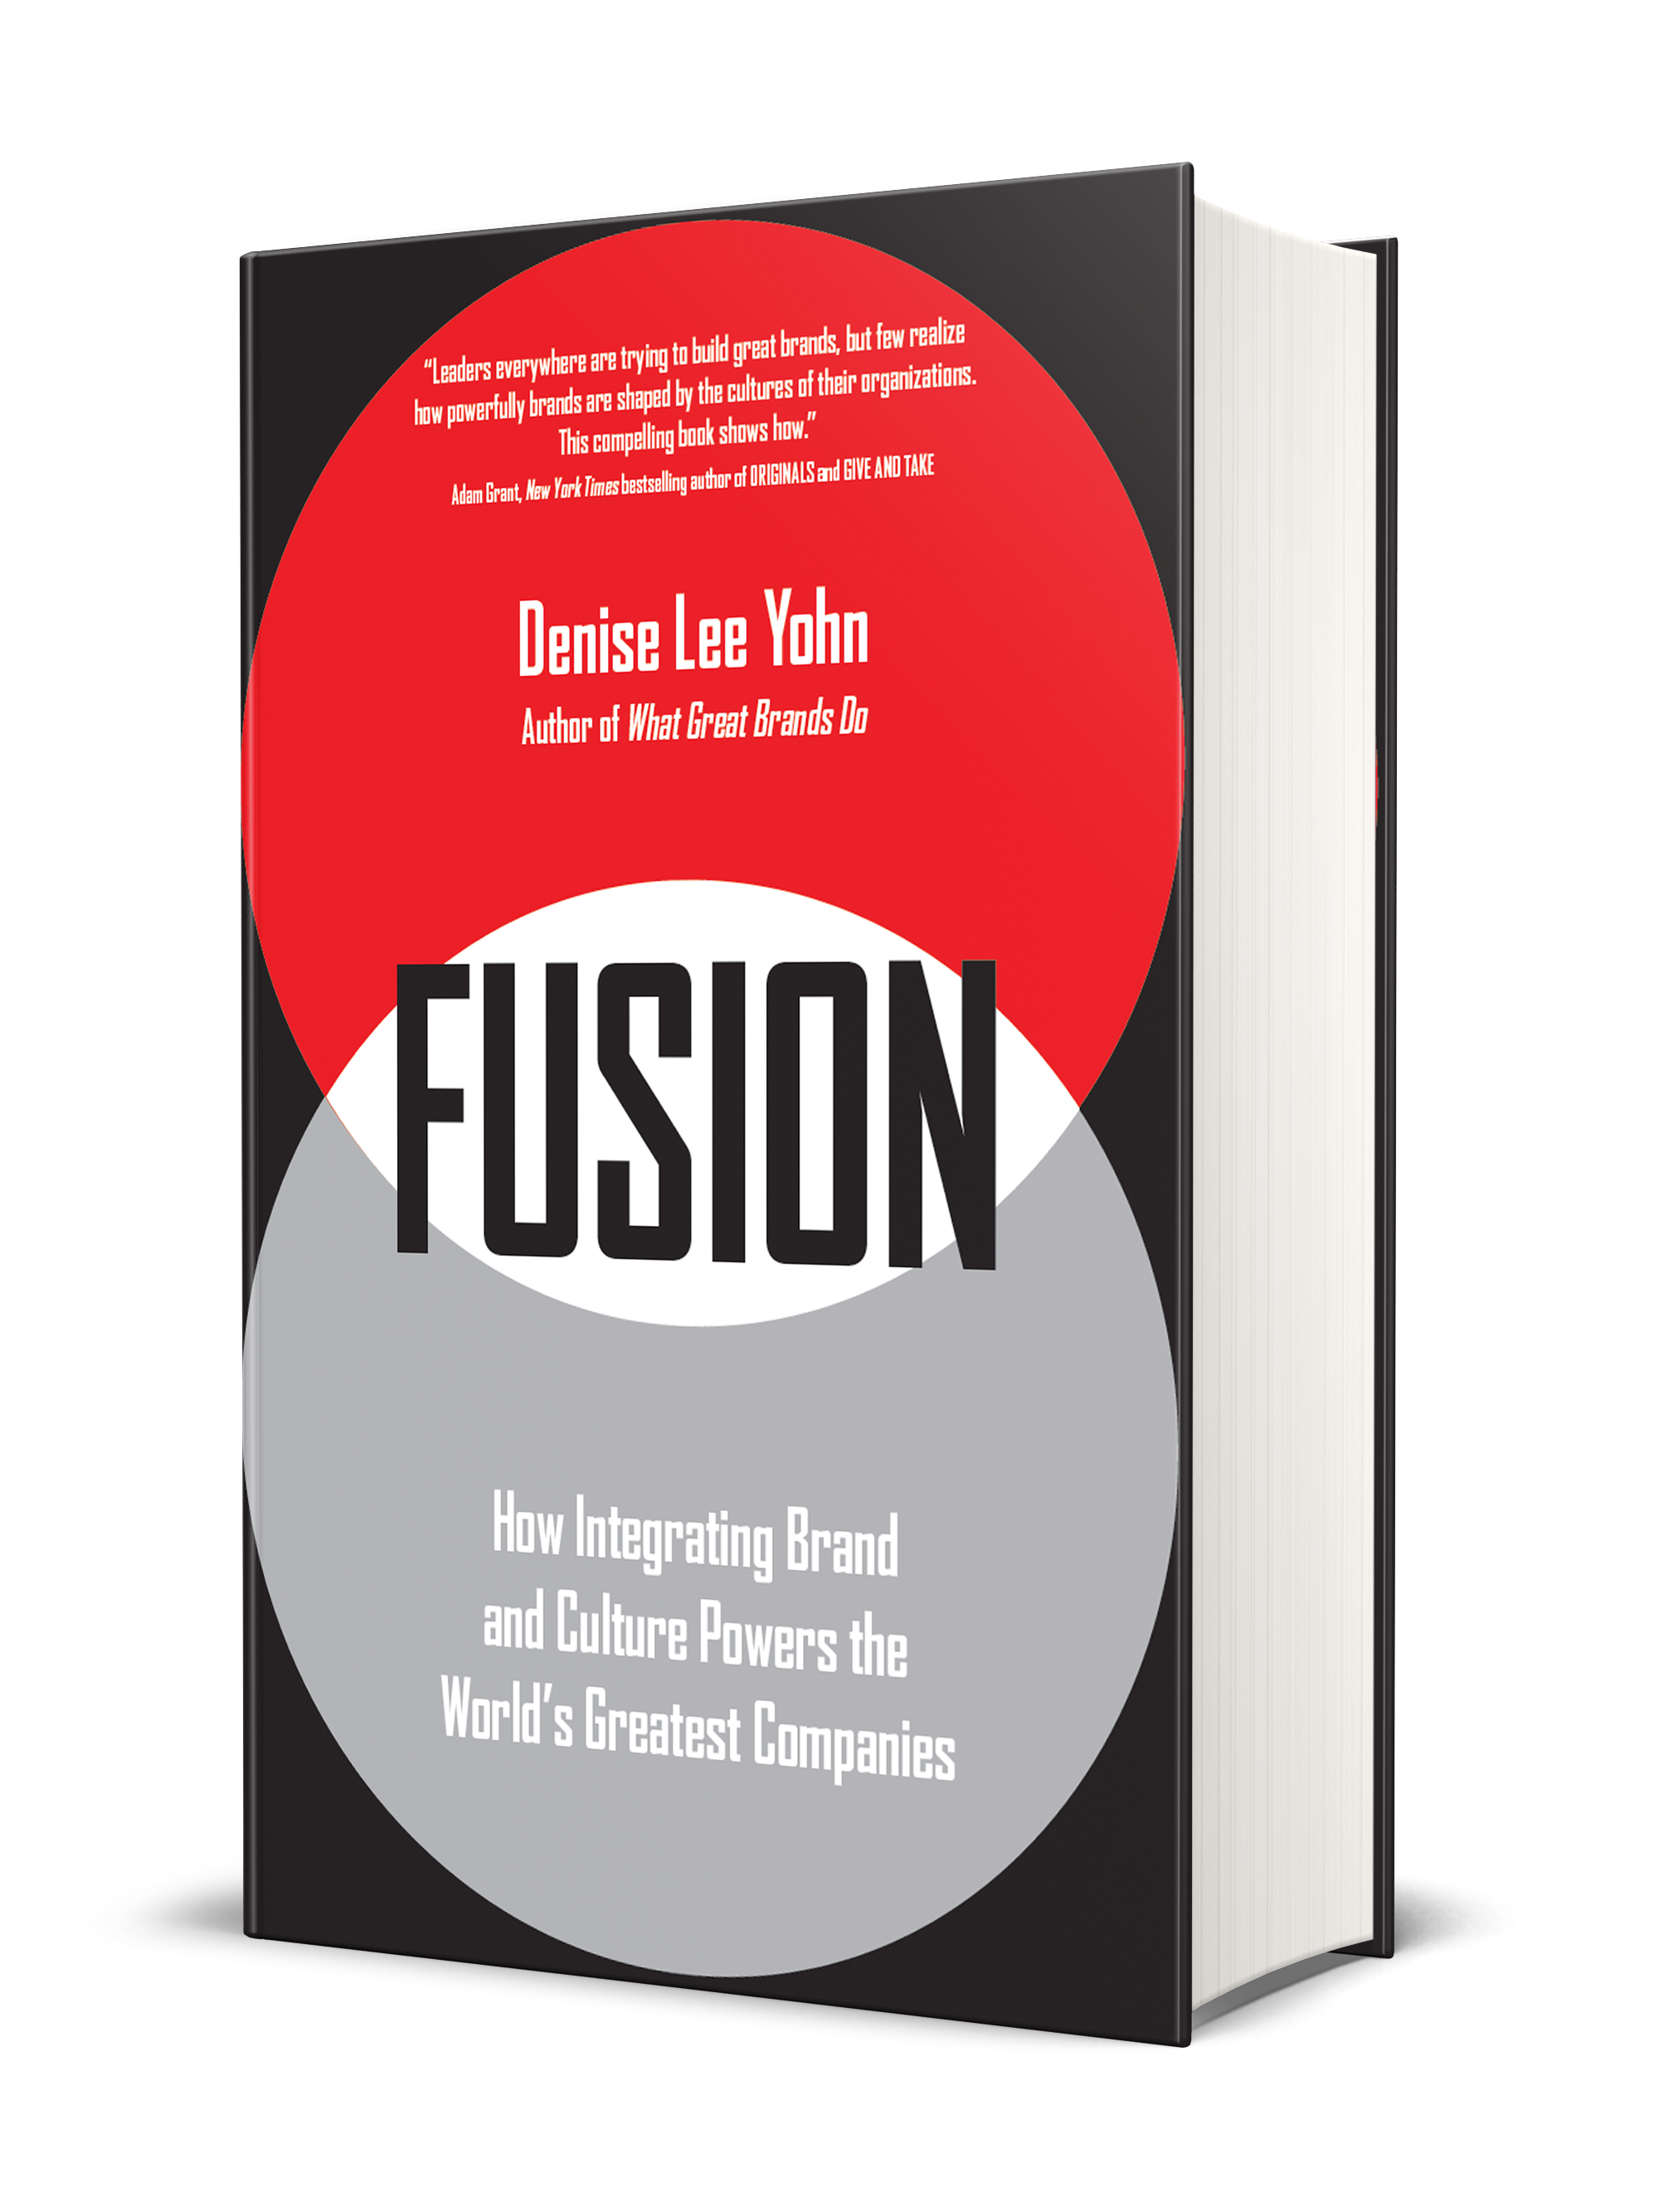 Front cover of Fusion: How Integrating Brand and Culture Powers the World's Greatest Companies, by Denise Lee Yohn